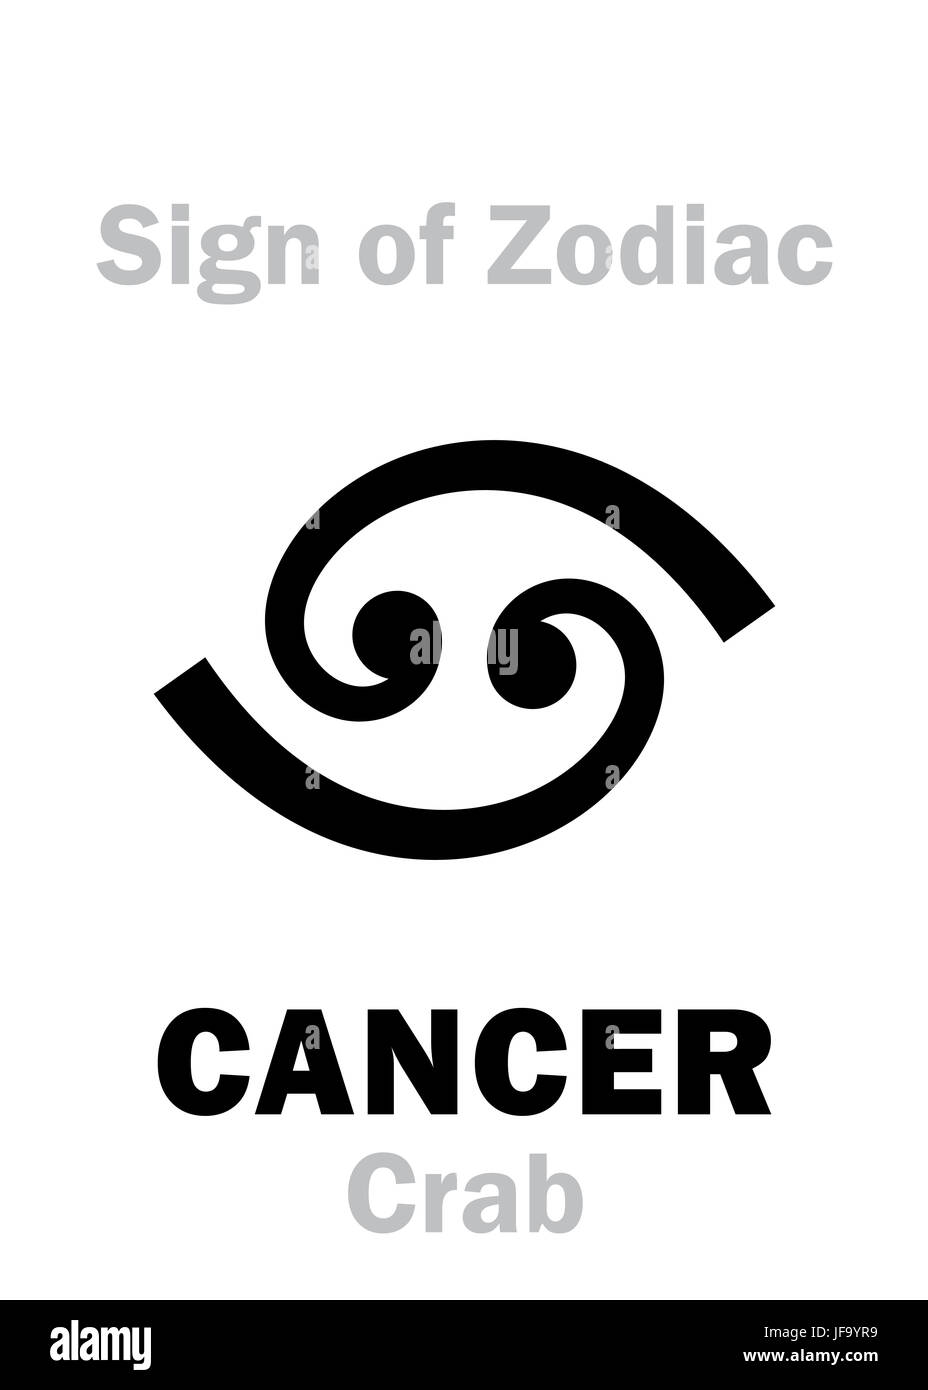 Astrology Sign Of Zodiac Cancer The Crab Stock Photo 147122173